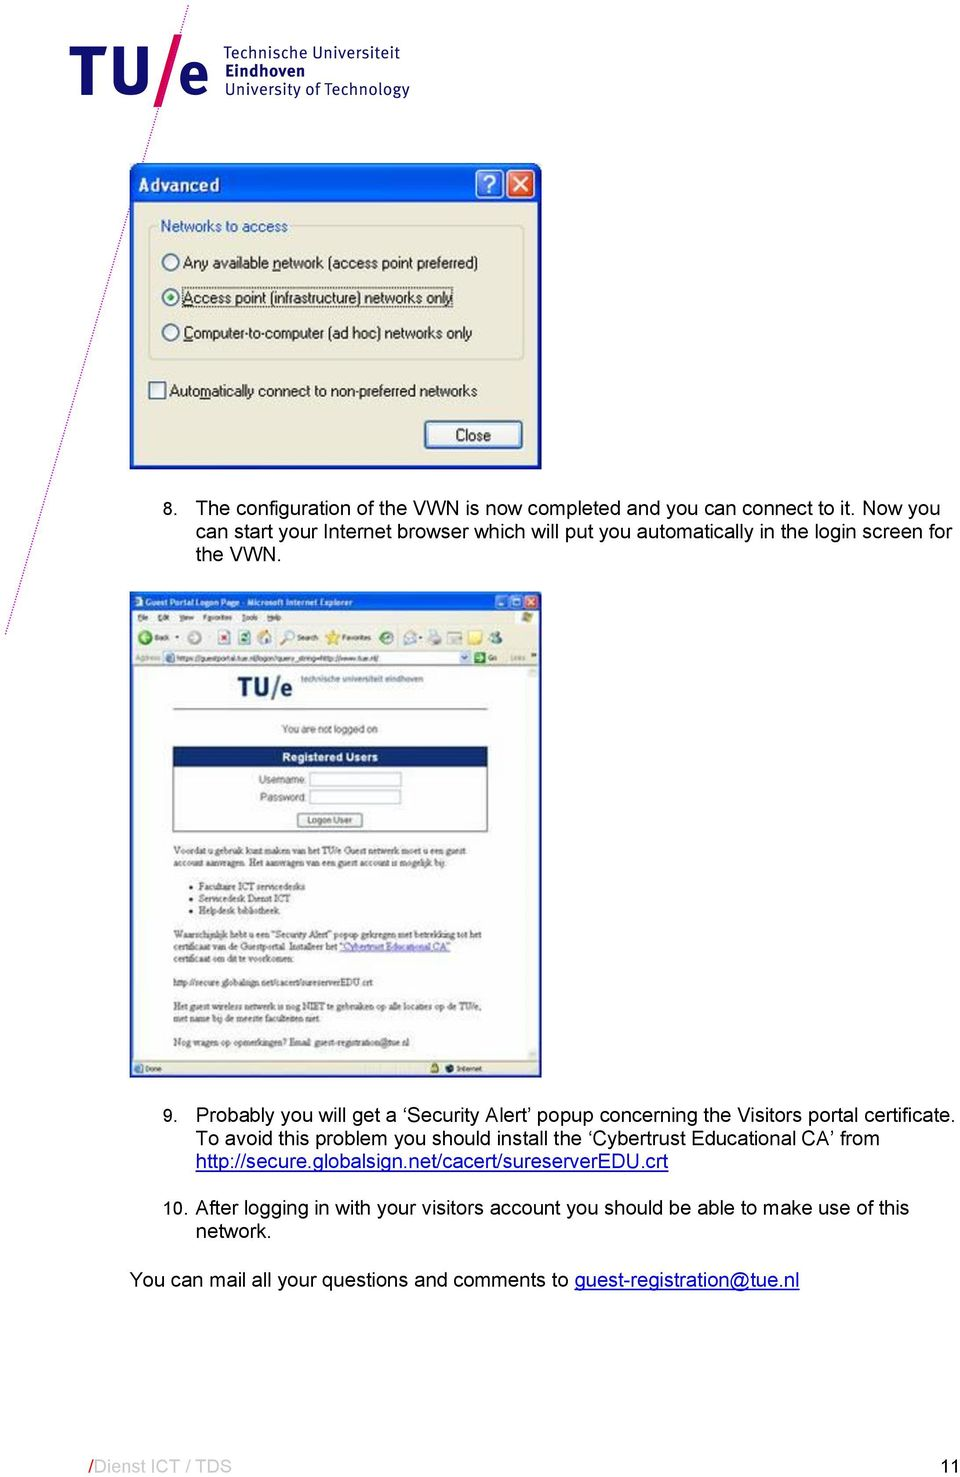 Probably you will get a Security Alert popup concerning the Visitors portal certificate.